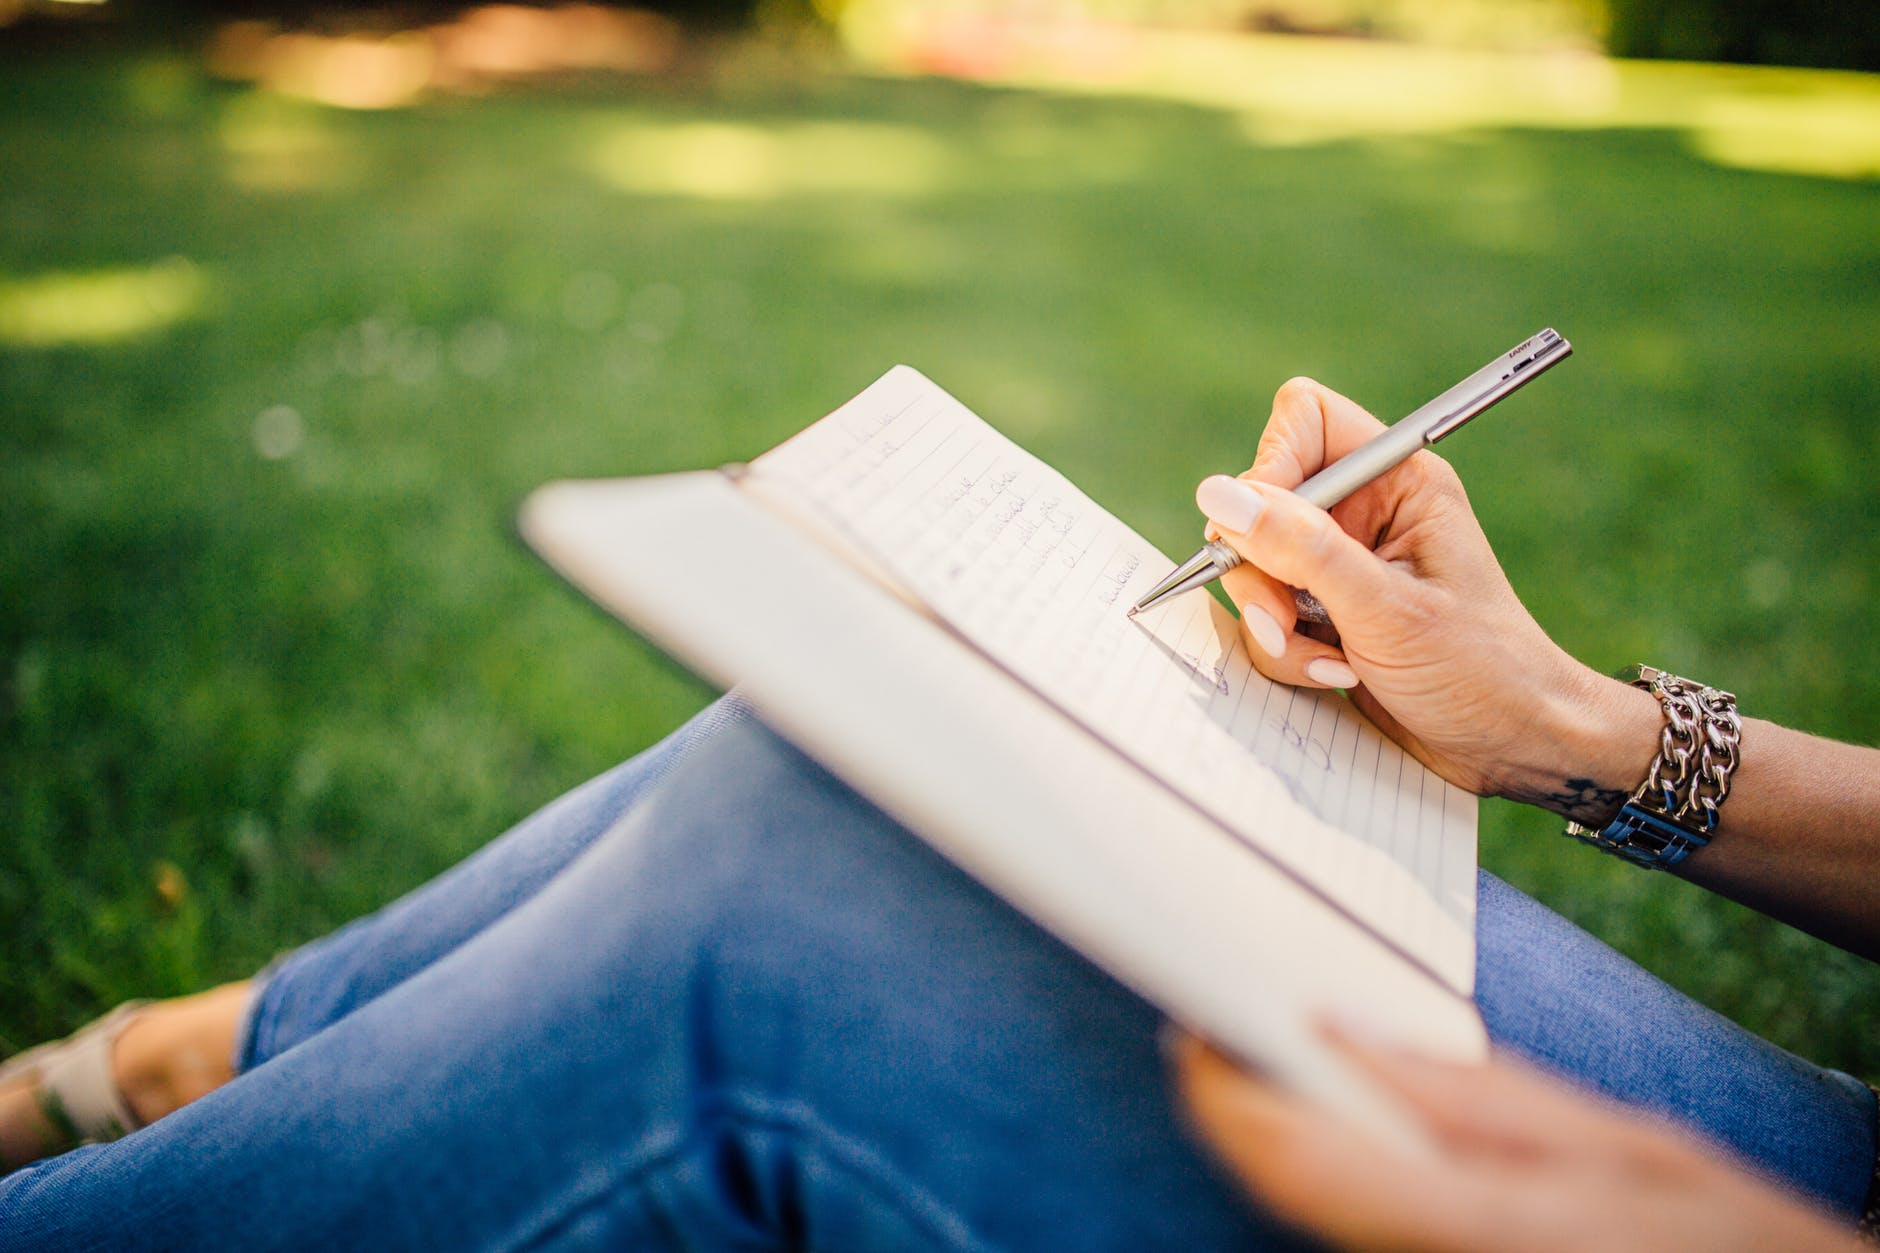 Journaling For Wellness: Write About Your Life Experiences